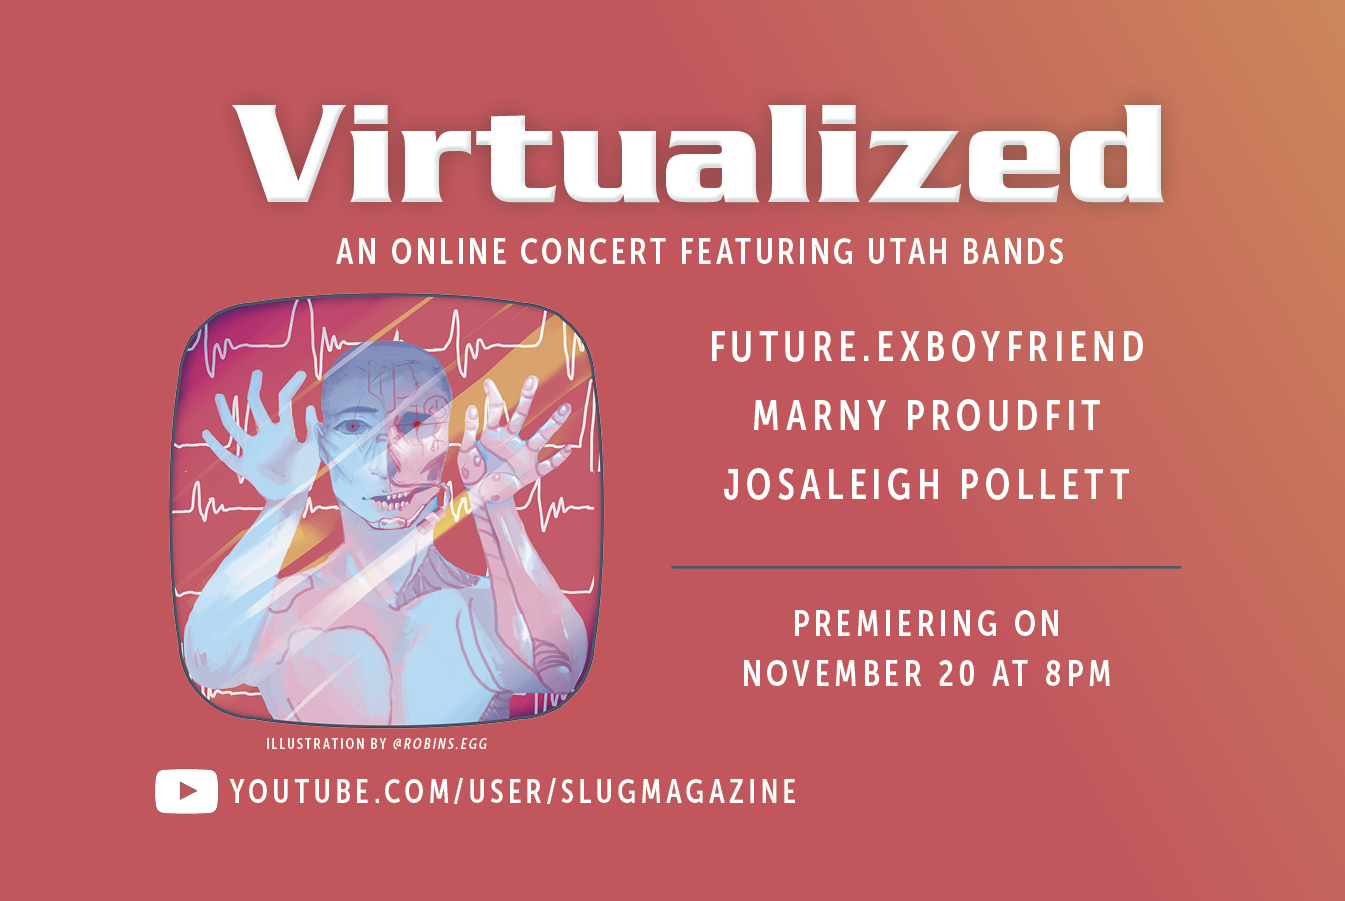 Virtualized: An Online Concert Featuring Utah Bands Marny Proudfit, Josaleigh Pollett, Future.Exboyfriend